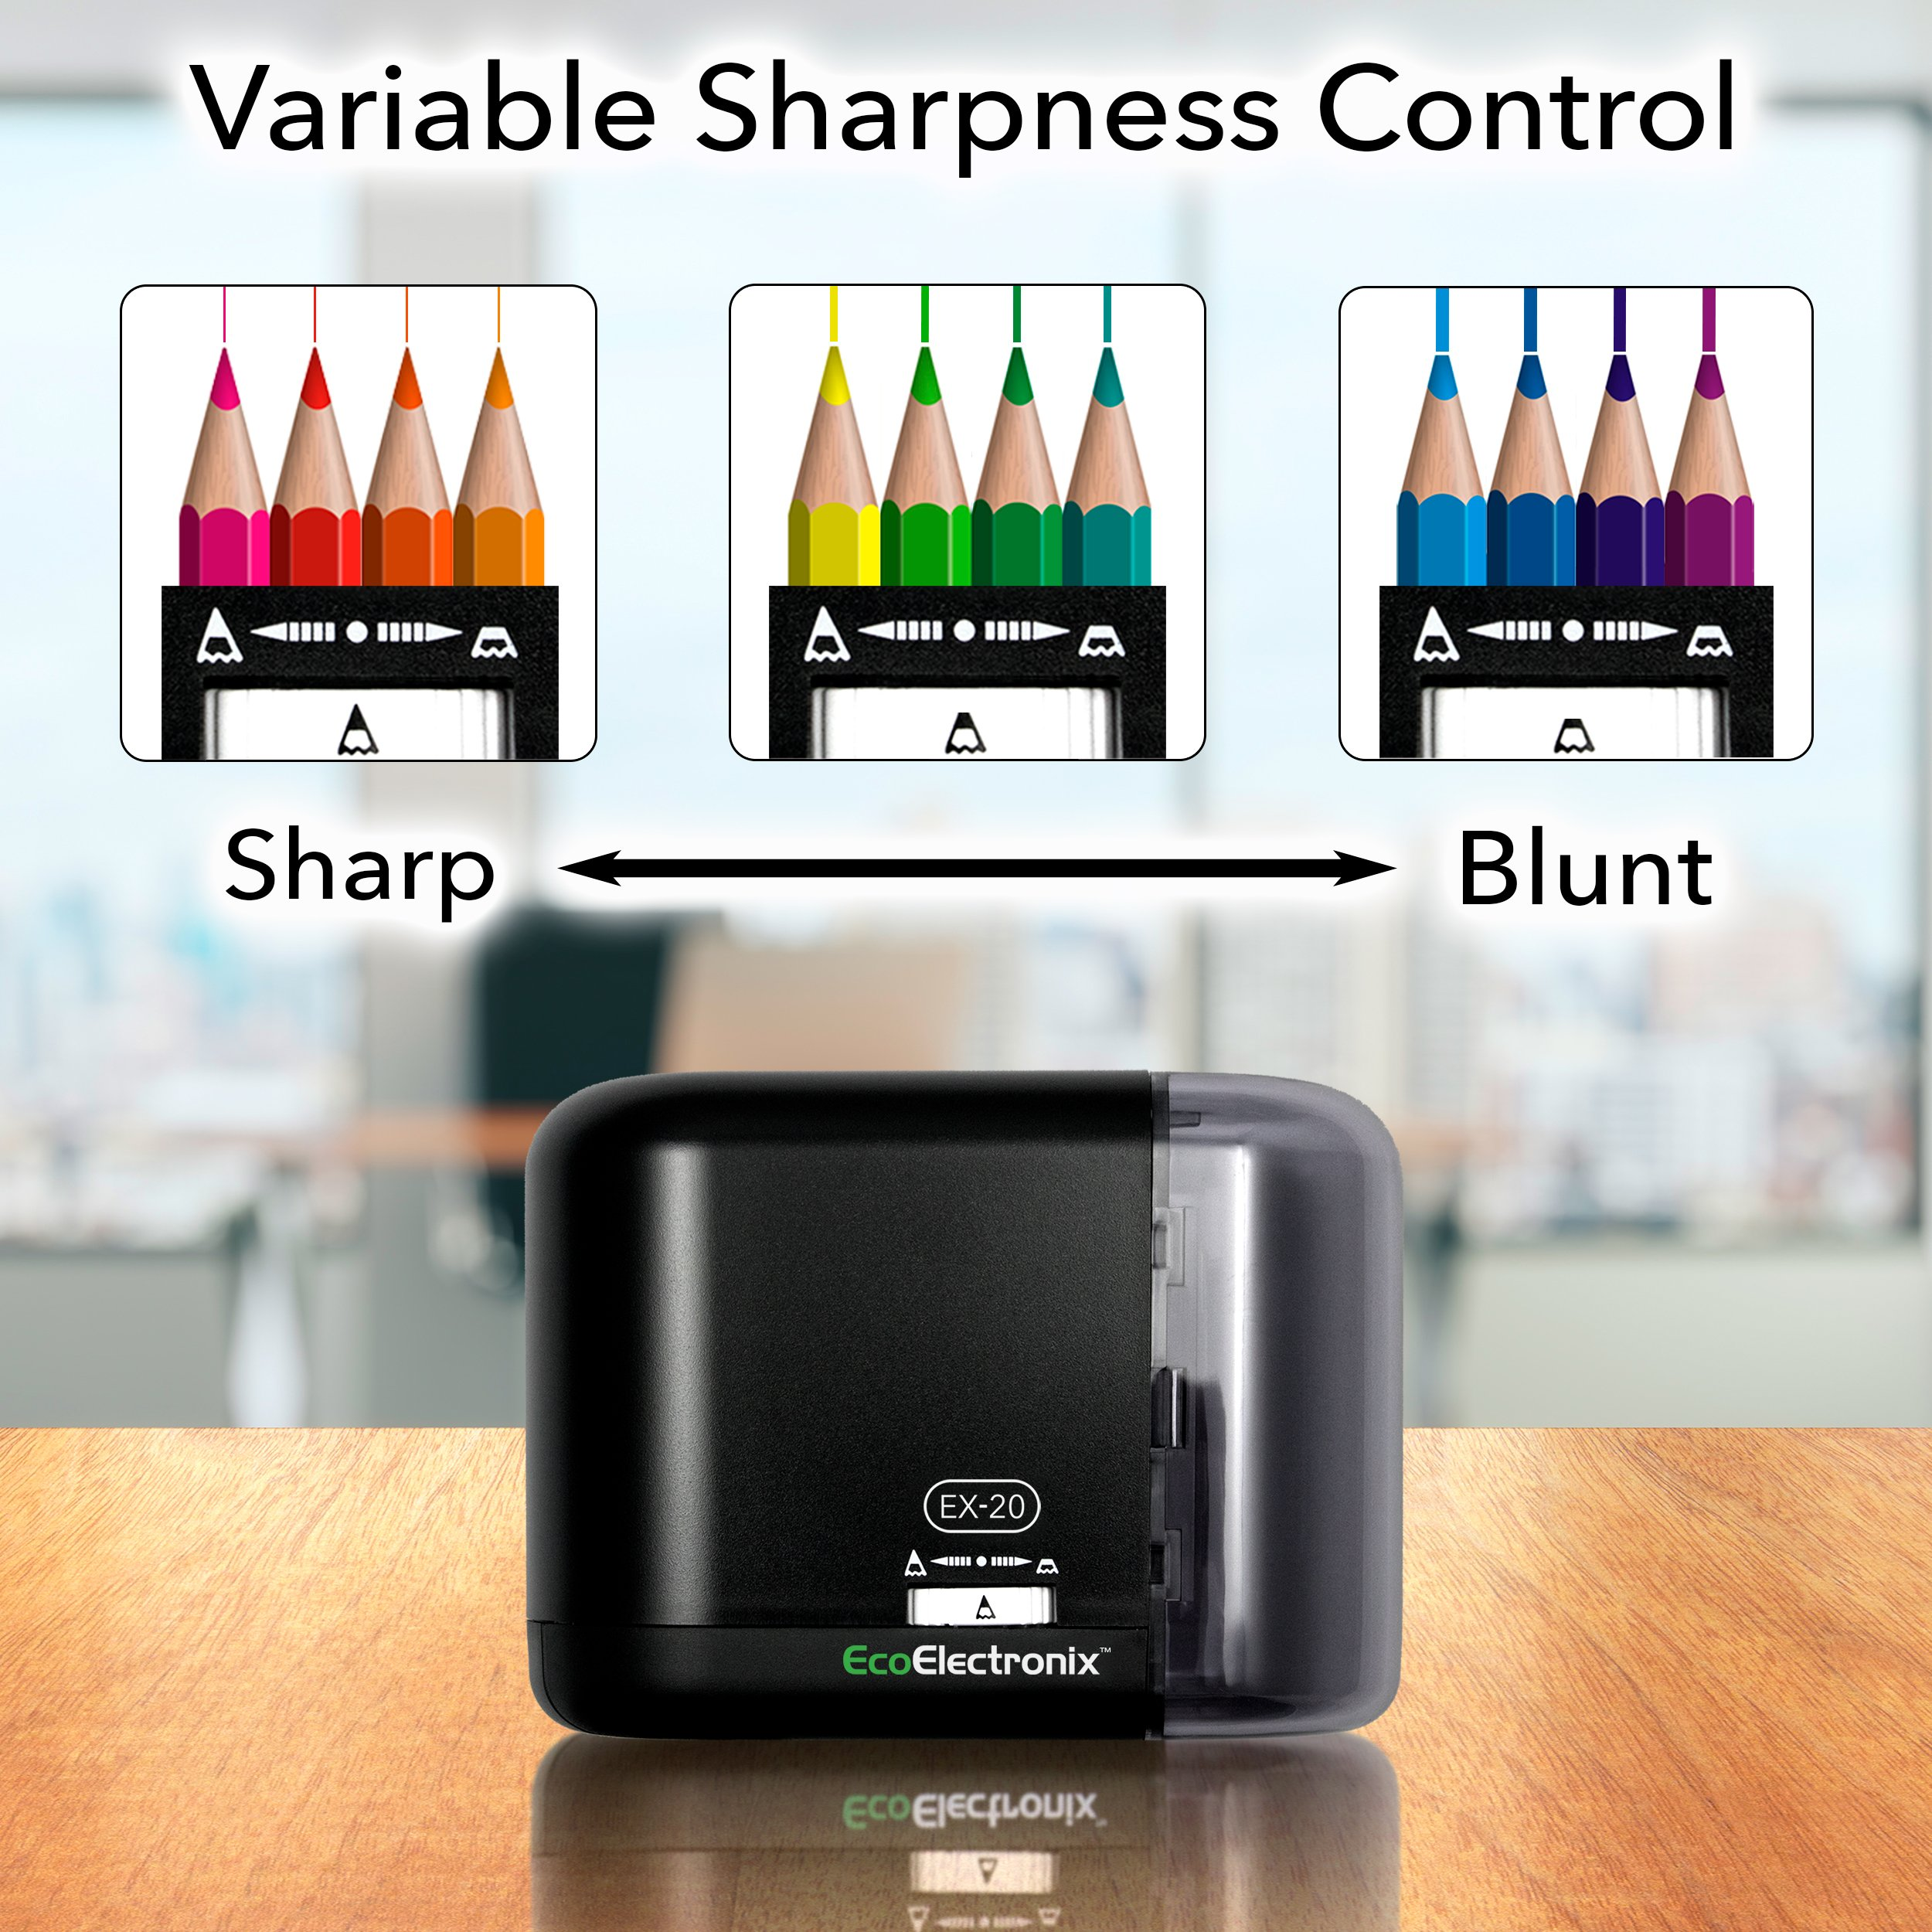 EX-20 Electric Pencil Sharpener - Battery and AC Powered (Adapter Included), For Standard & Artistic Sharpening, Ideal For No. 2 and Colored Pencils (Artist Drawing, Coloring), Compact Durable Design by EcoElectronix (Image #3)